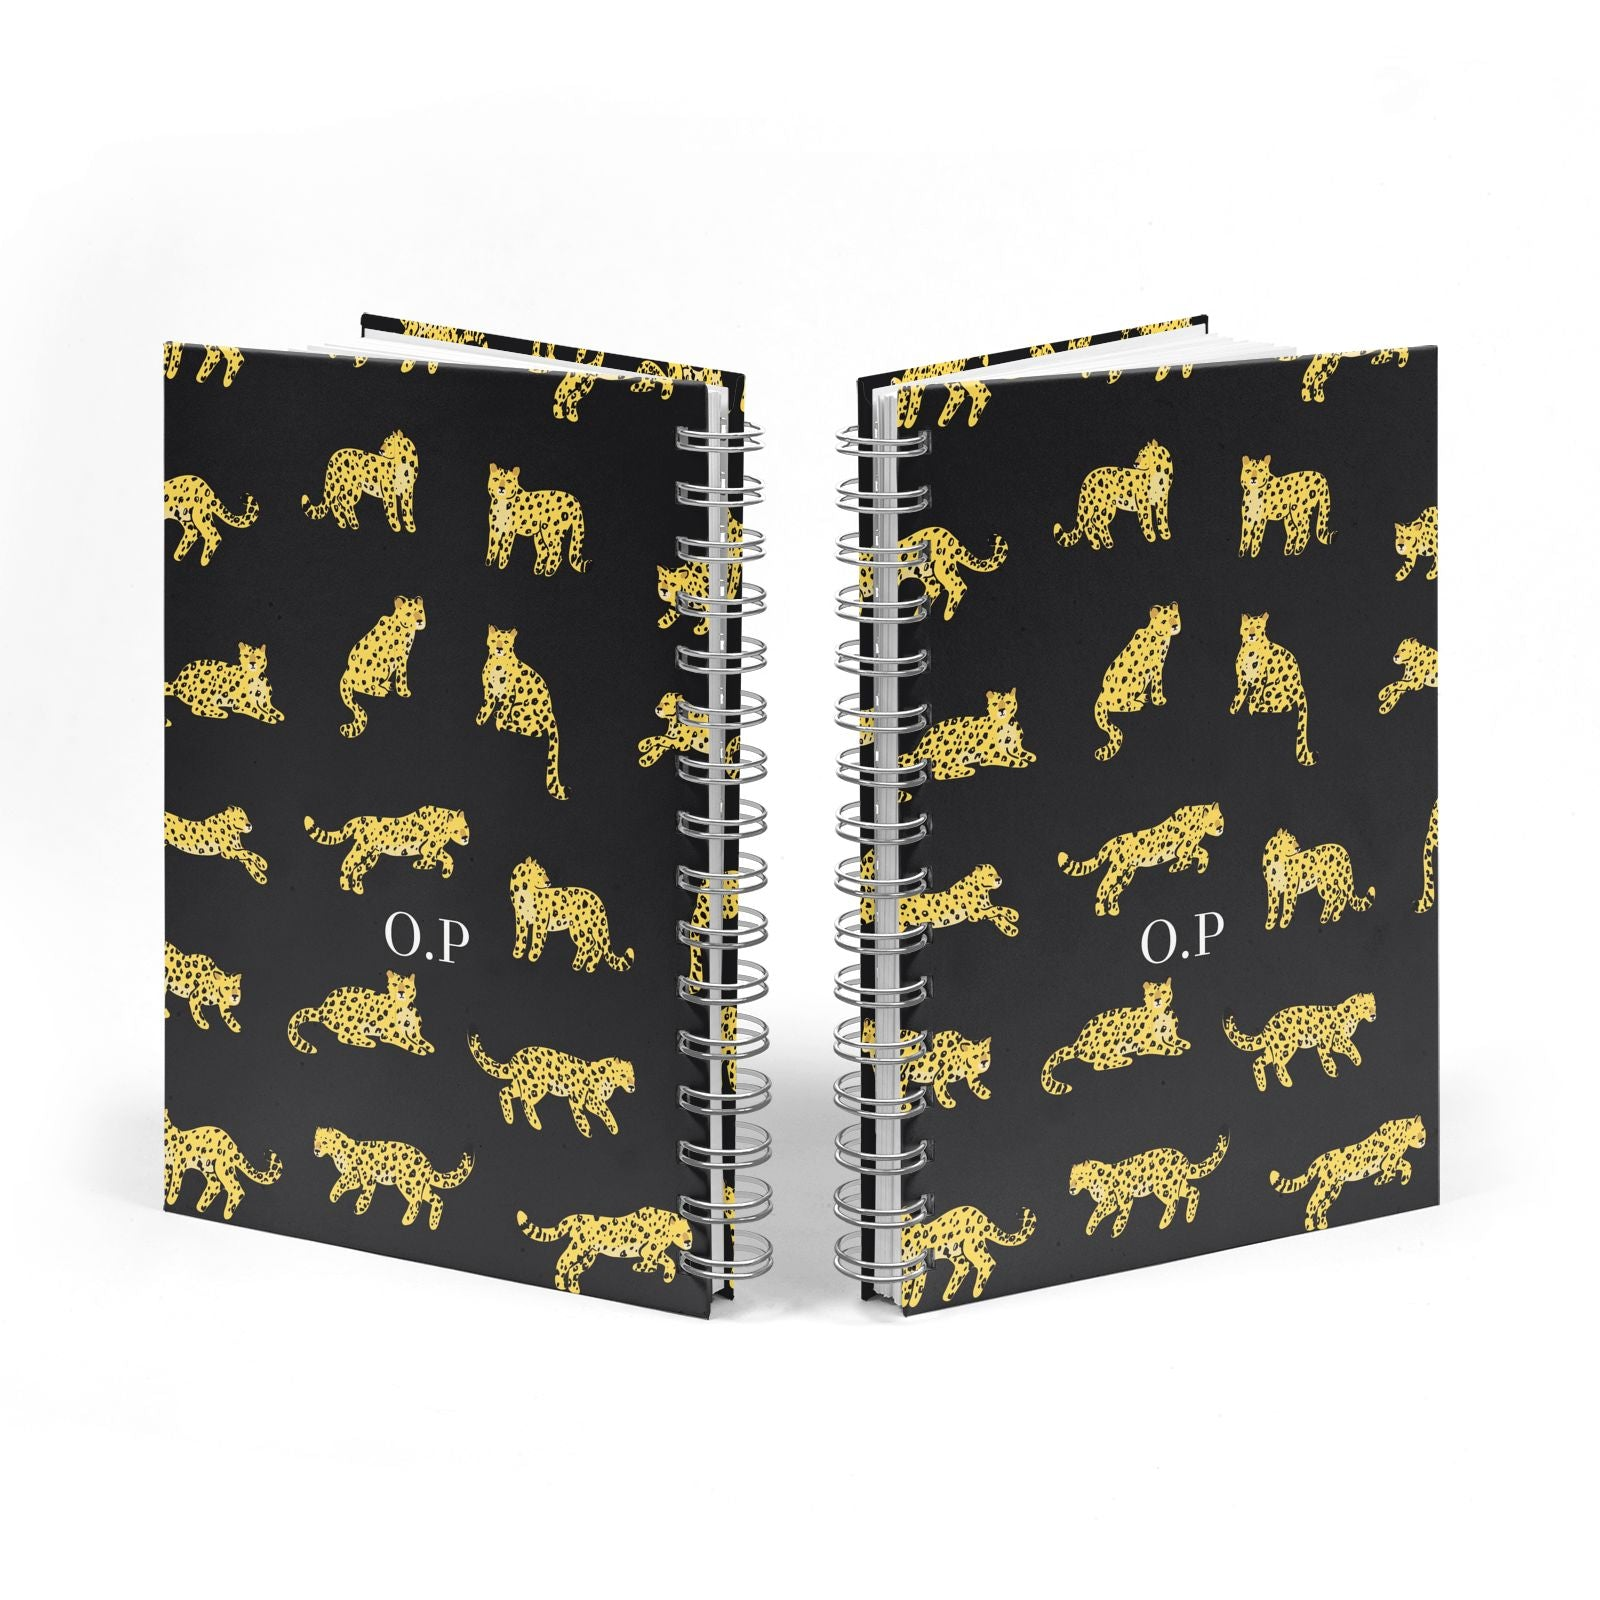 Prowling Leopard Notebook with Silver Coil Spine View